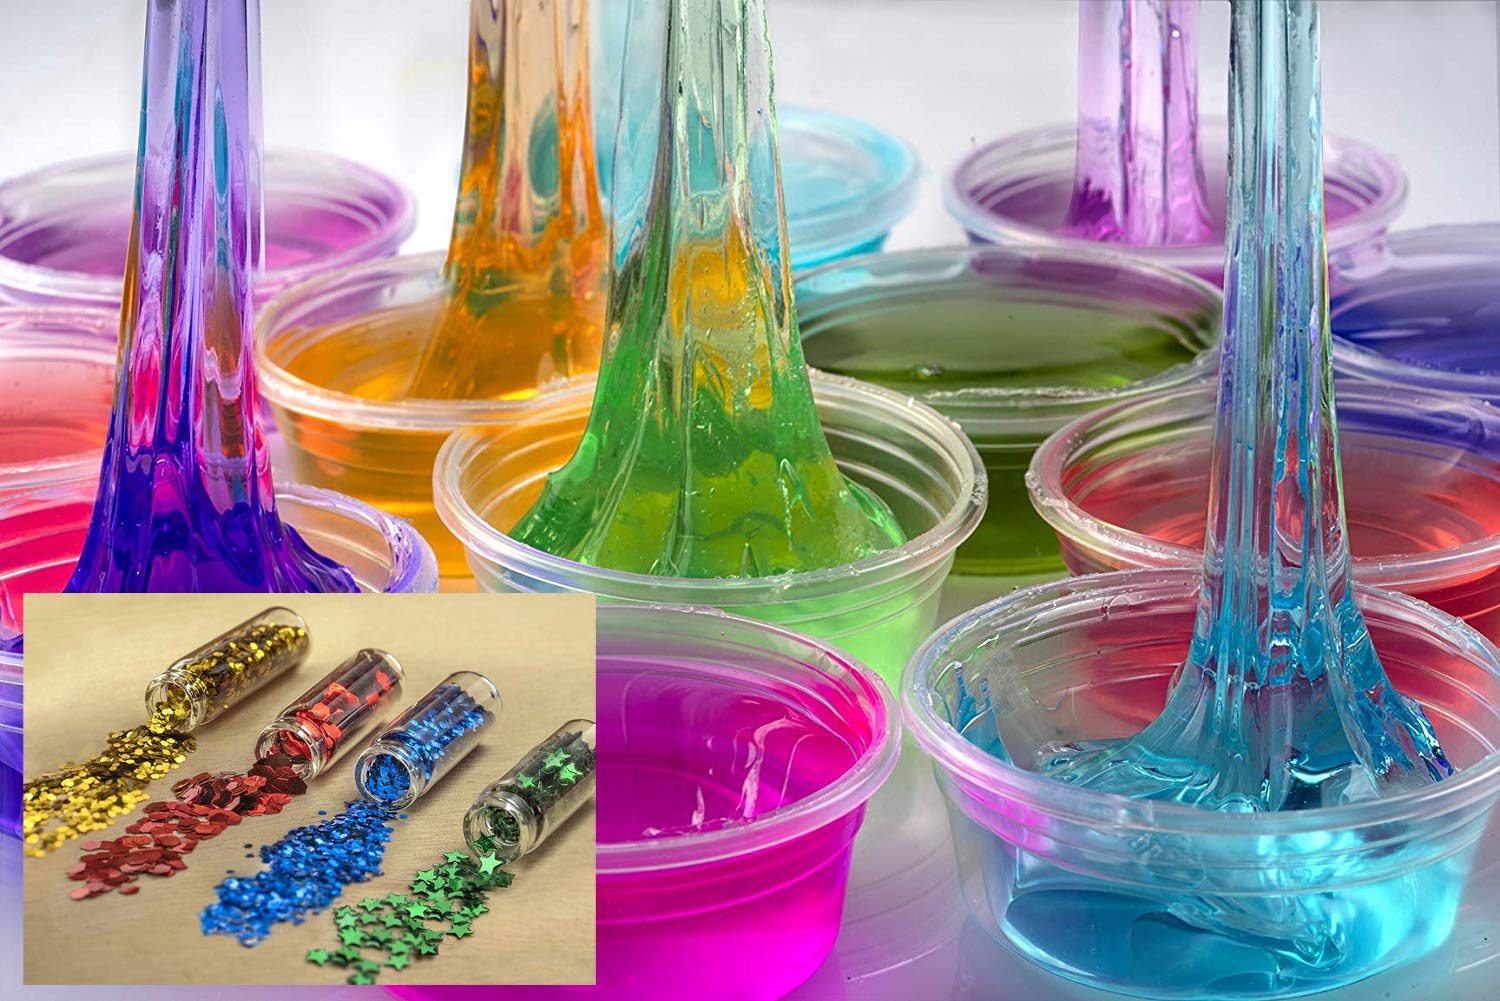 EZ Slime Kit- Boys Girls Everyone. Crystal Slime, Fluffy Clay Slime, Fake Snow, Glow Powder, Thermal Powder, Foam Beads, Glitter, Plus More. 60 Piece Kit. Over 3 Pounds by EZ Slime Kit (Image #5)